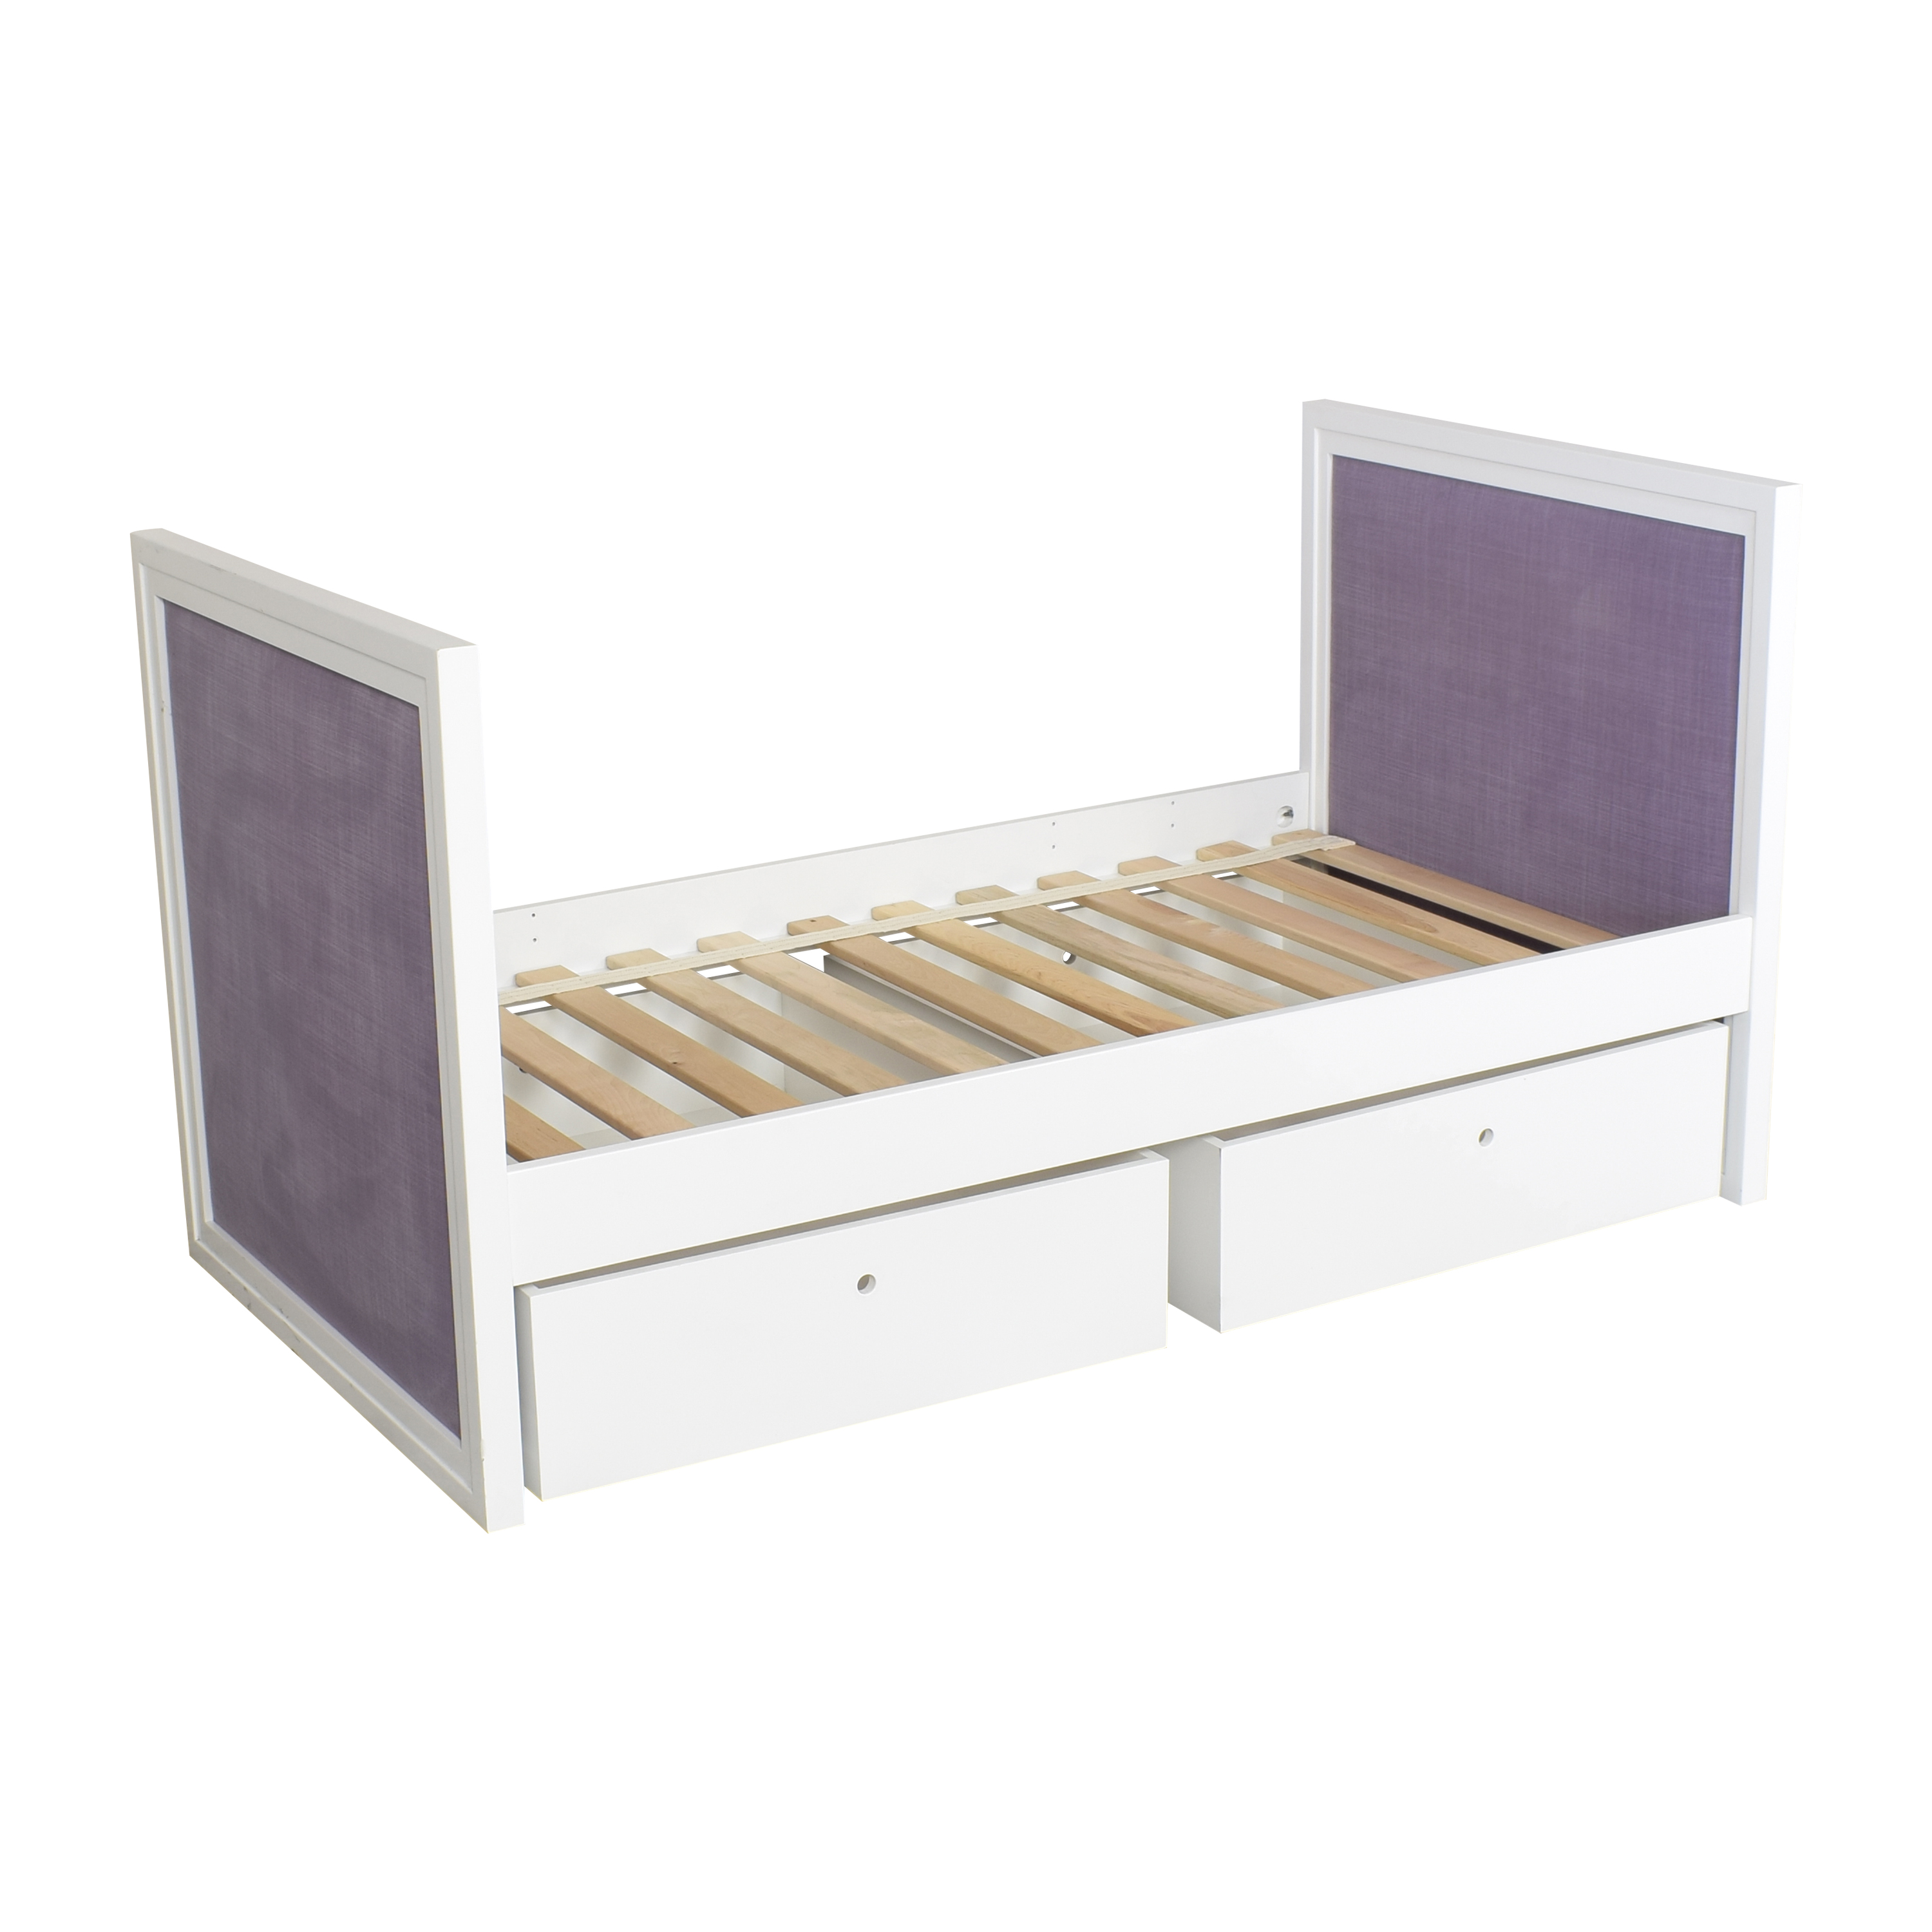 ducduc ducduc Cabana Upholstered Twin Daybed with Storage ct